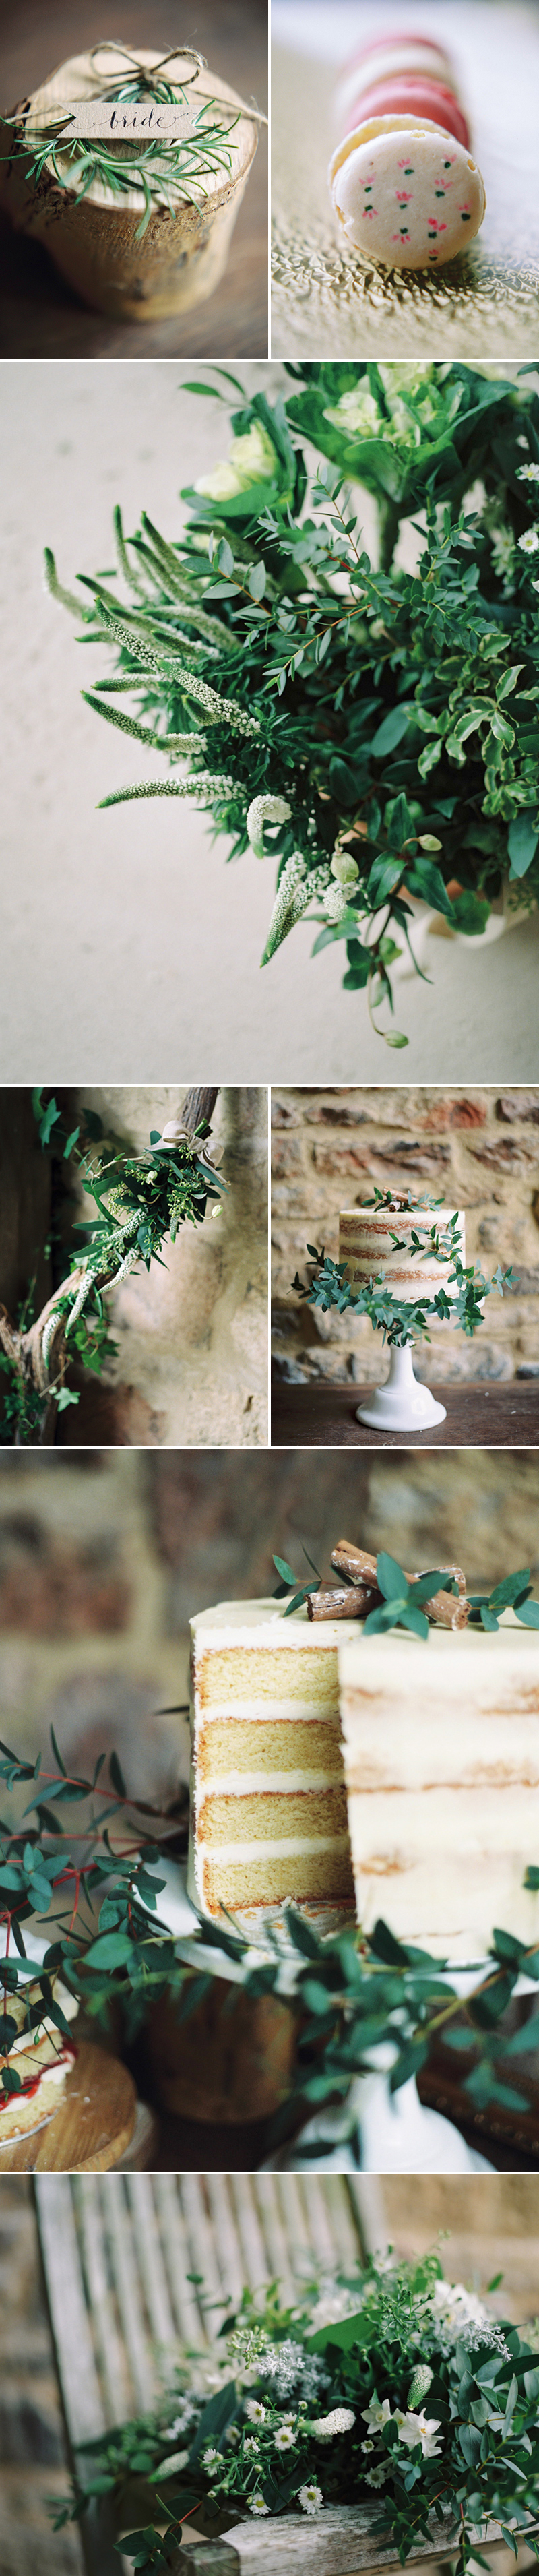 rustic-elegance-wedding-inspiration-coco-wedding-venues-theresa-furey-photography-004